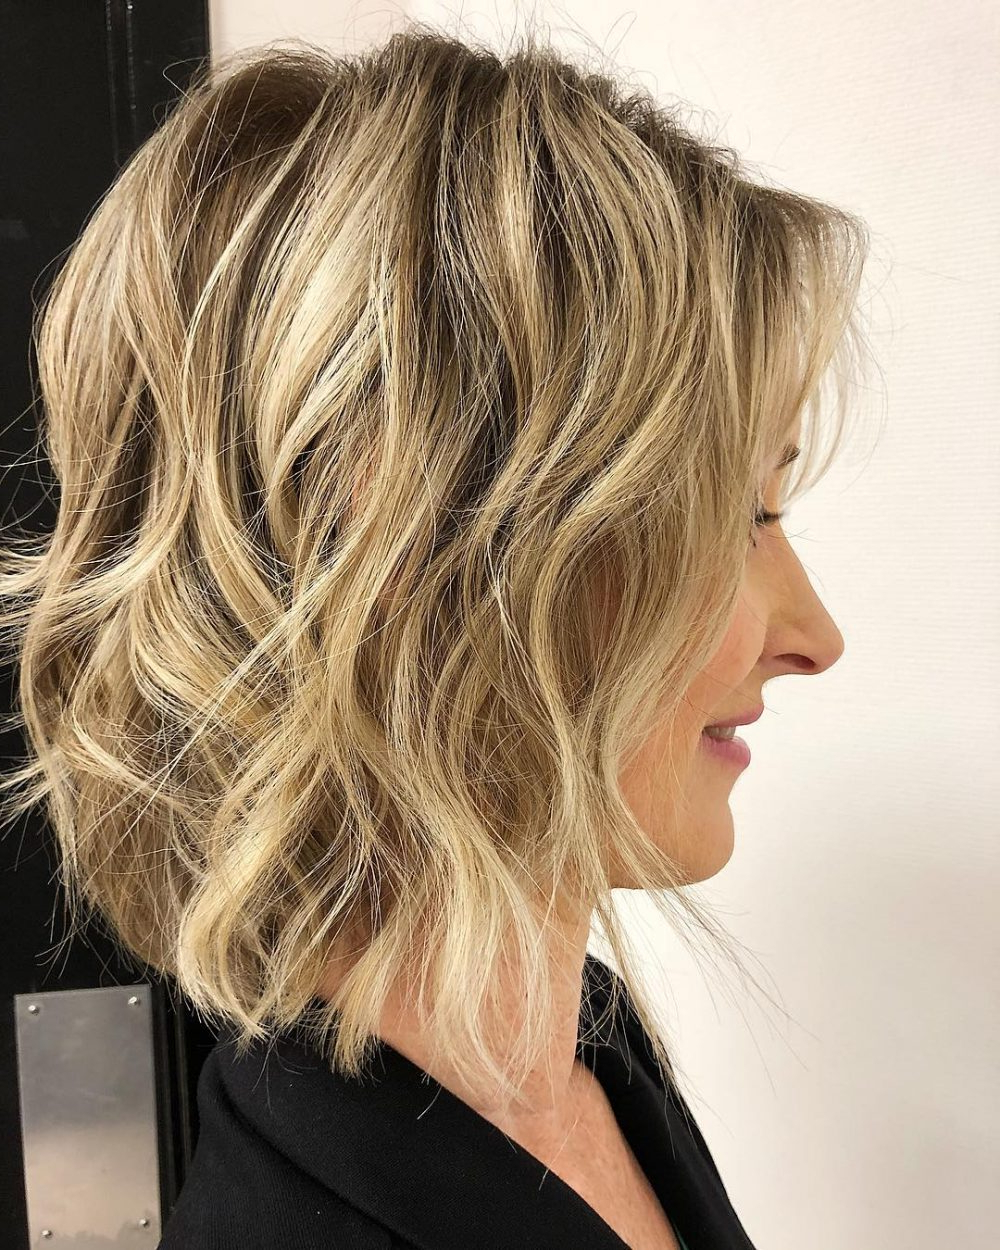 43 Perfect Short Hairstyles For Fine Hair In 2018 Intended For Short Hairstyles For Curly Fine Hair (View 11 of 25)